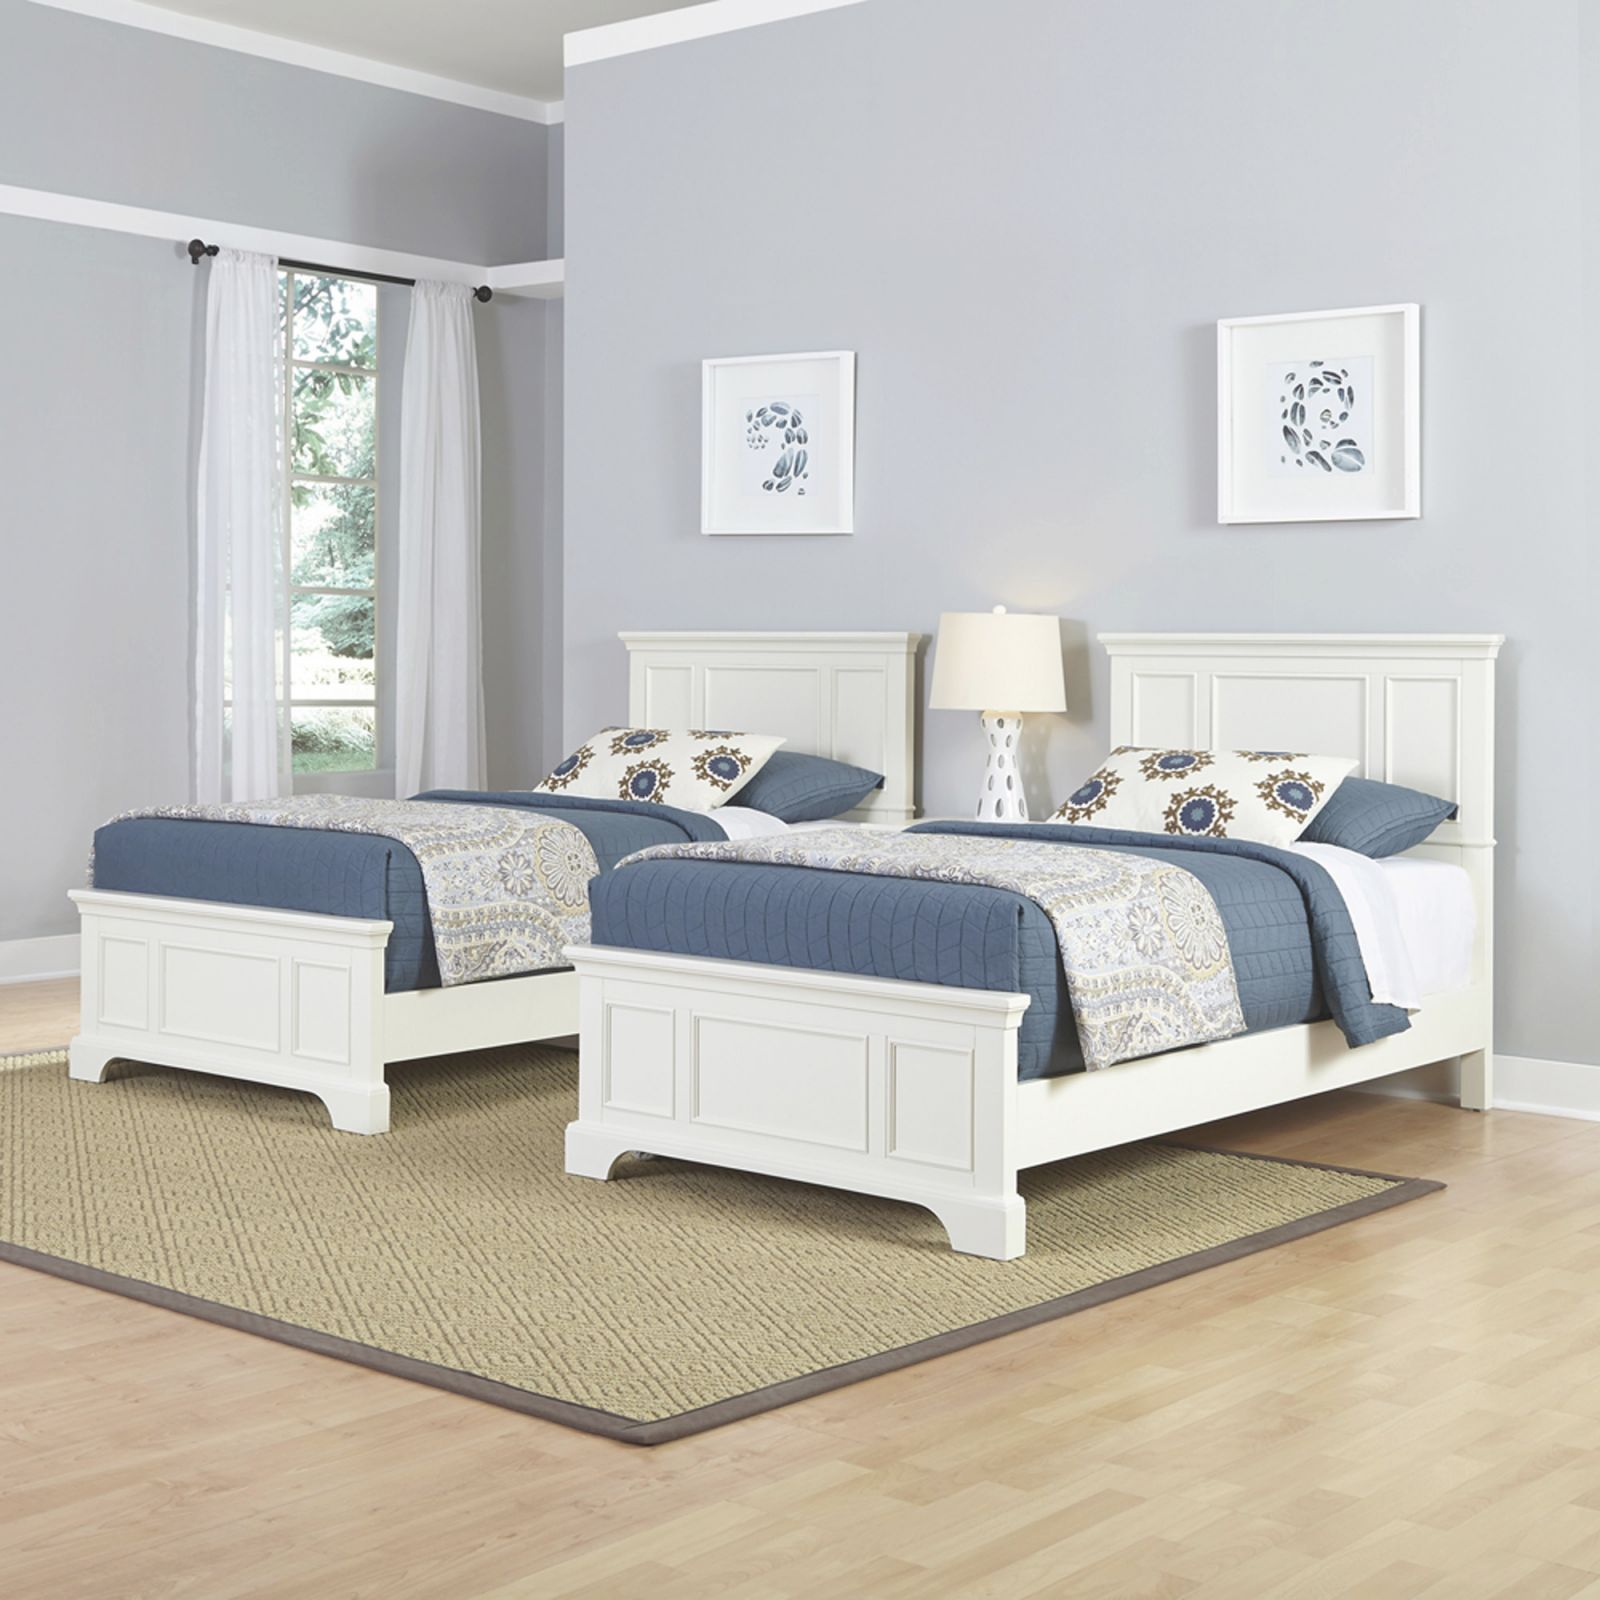 Naples Two Twin Beds And Night Stand pertaining to Luxury Twin Bedroom Furniture Set